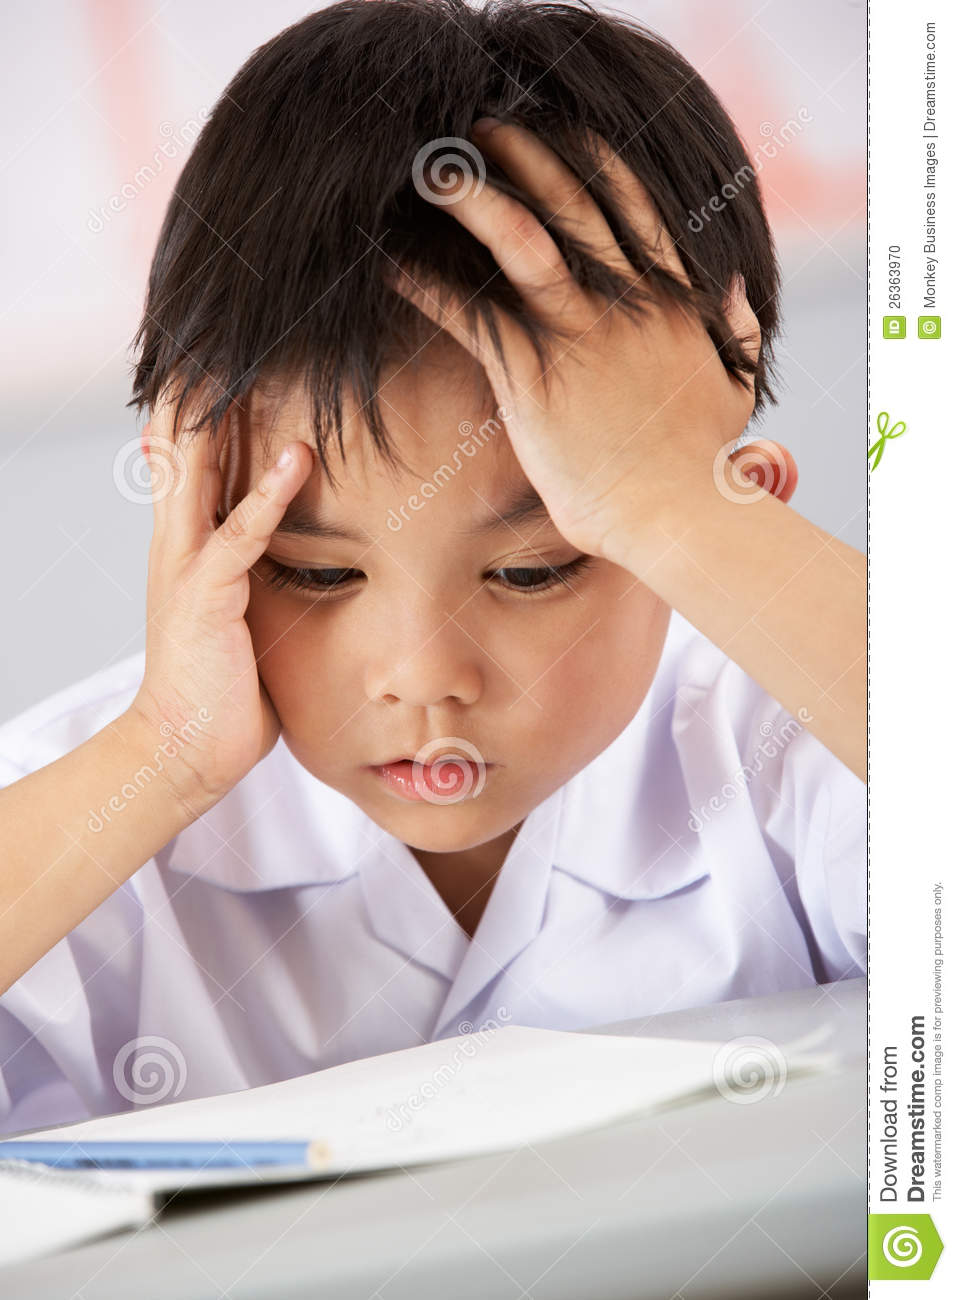 Unhappy Male Student Working At Desk Stock Photo - Image ...